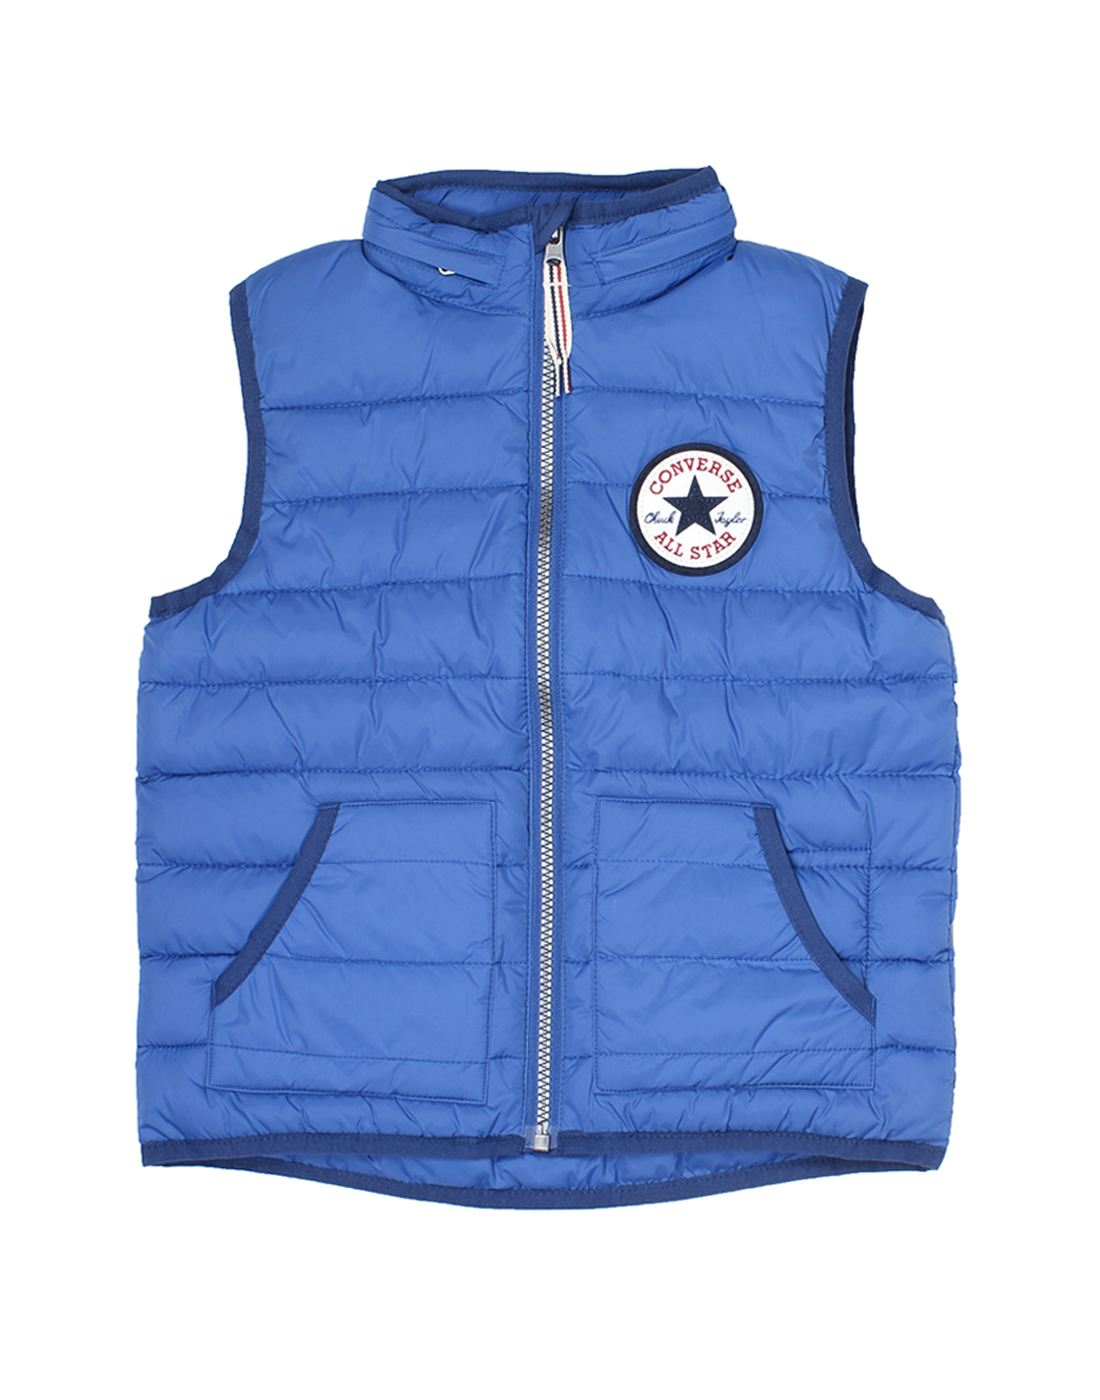 Converse Boys Blue Jacket